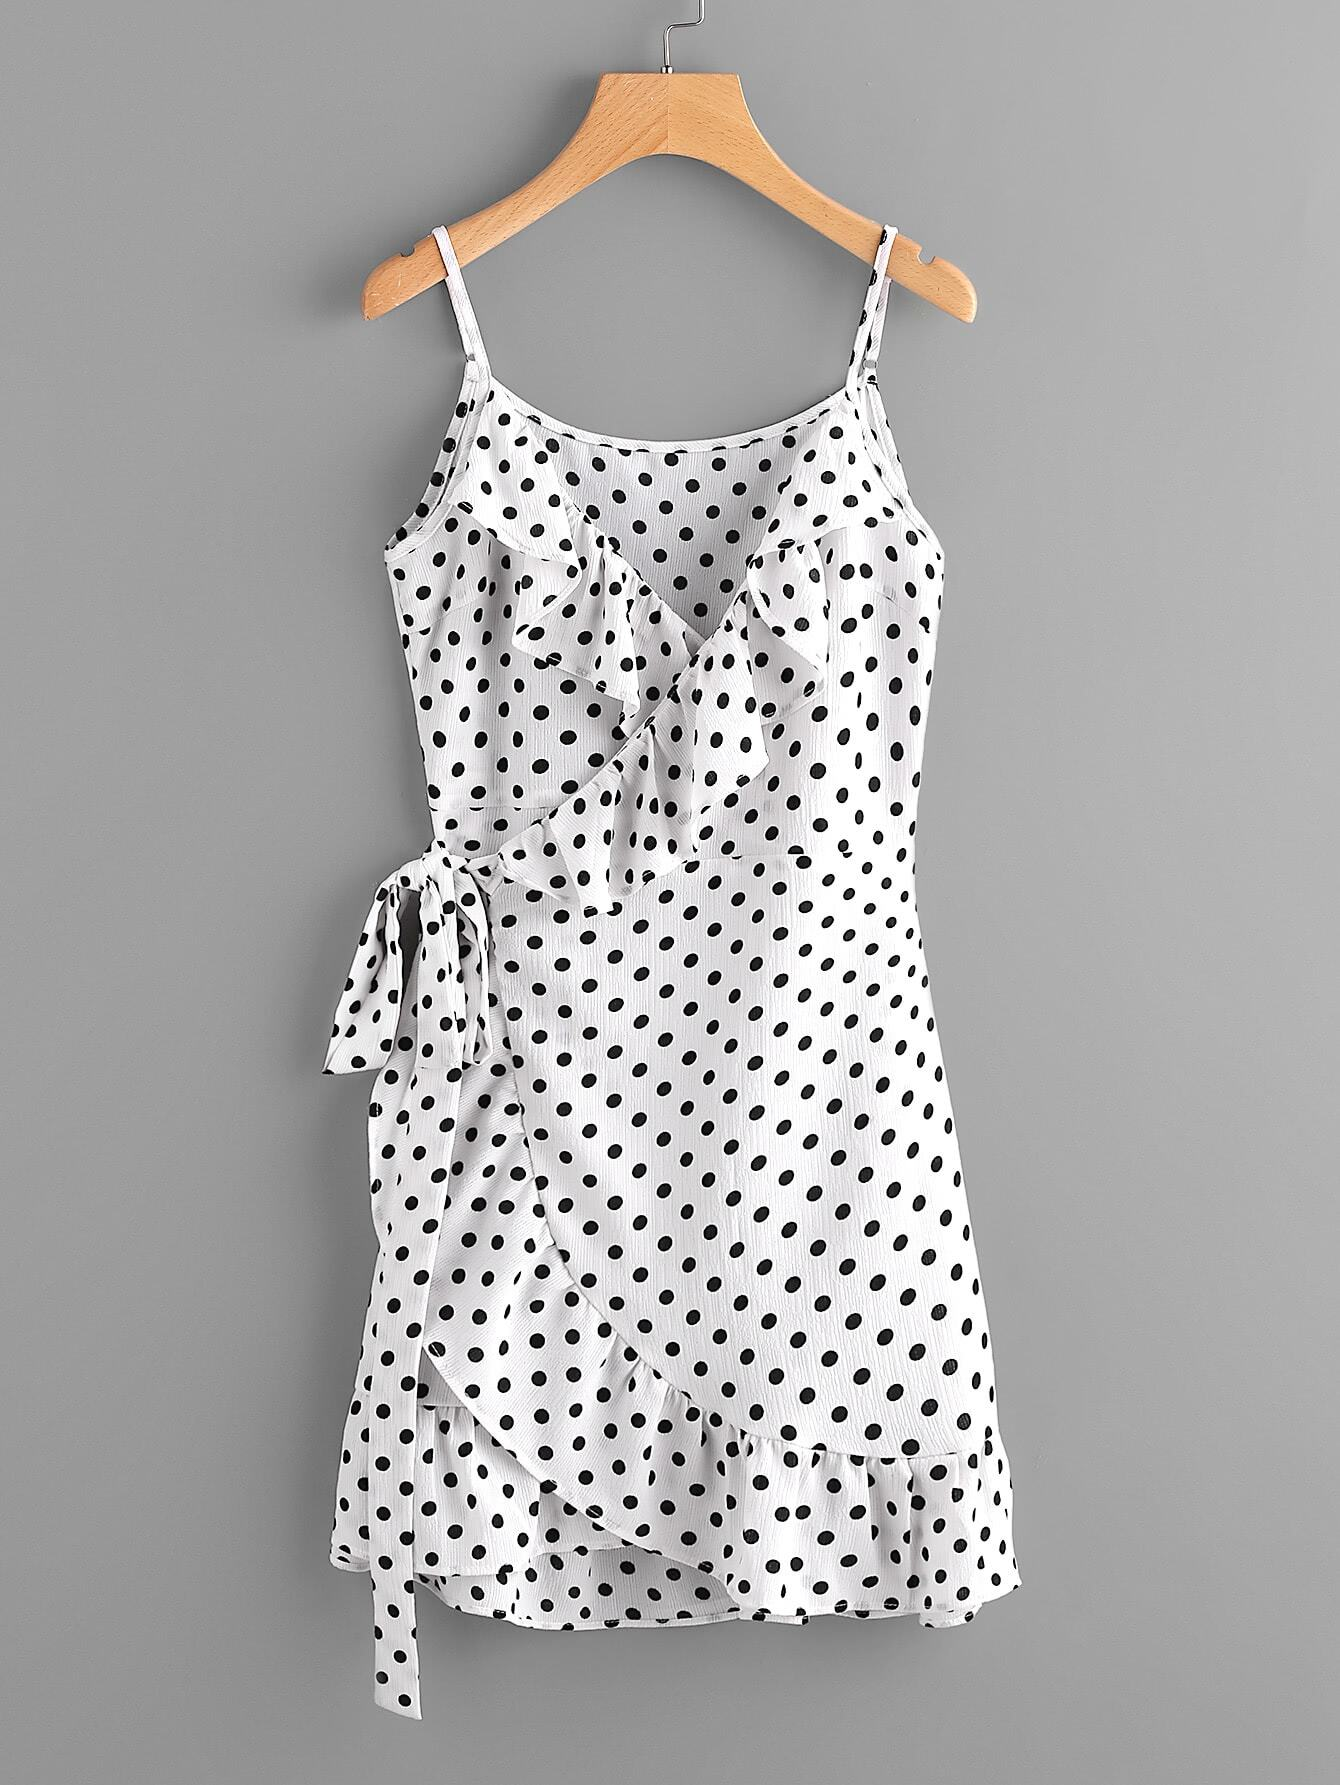 Polka Dot Wrap Self Tie Waist Frill Cami Dress заболевания кожи